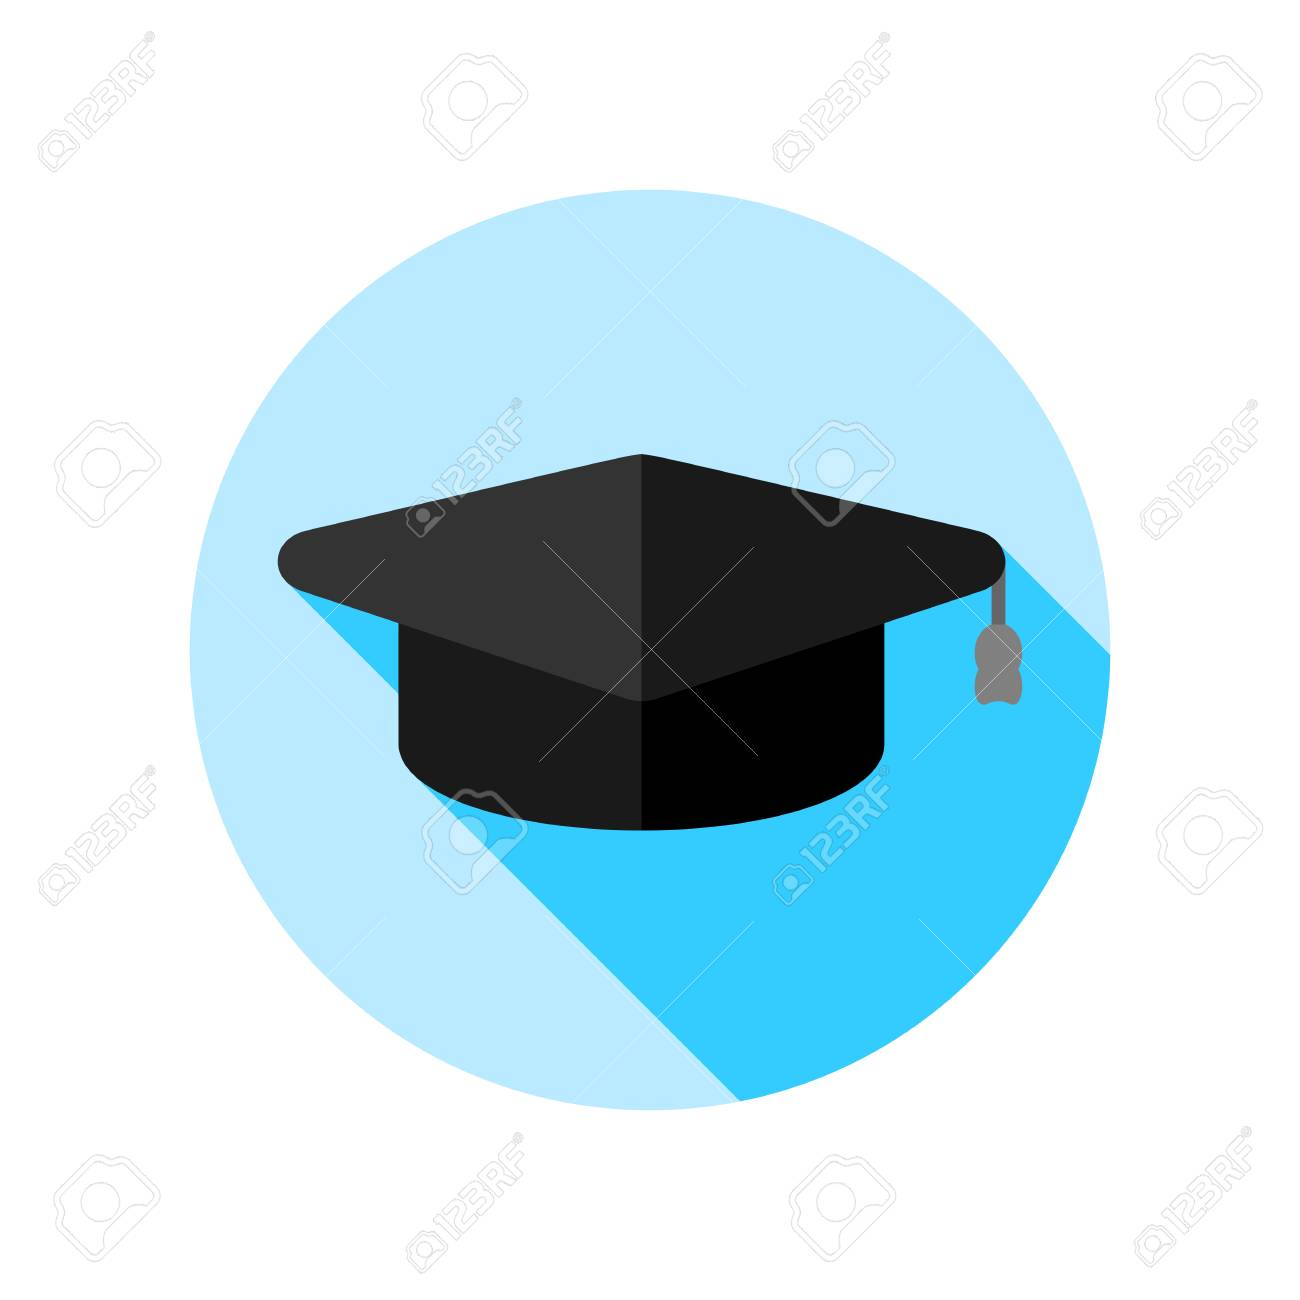 Graduation hat cap art icon for apps and websites - 112464013